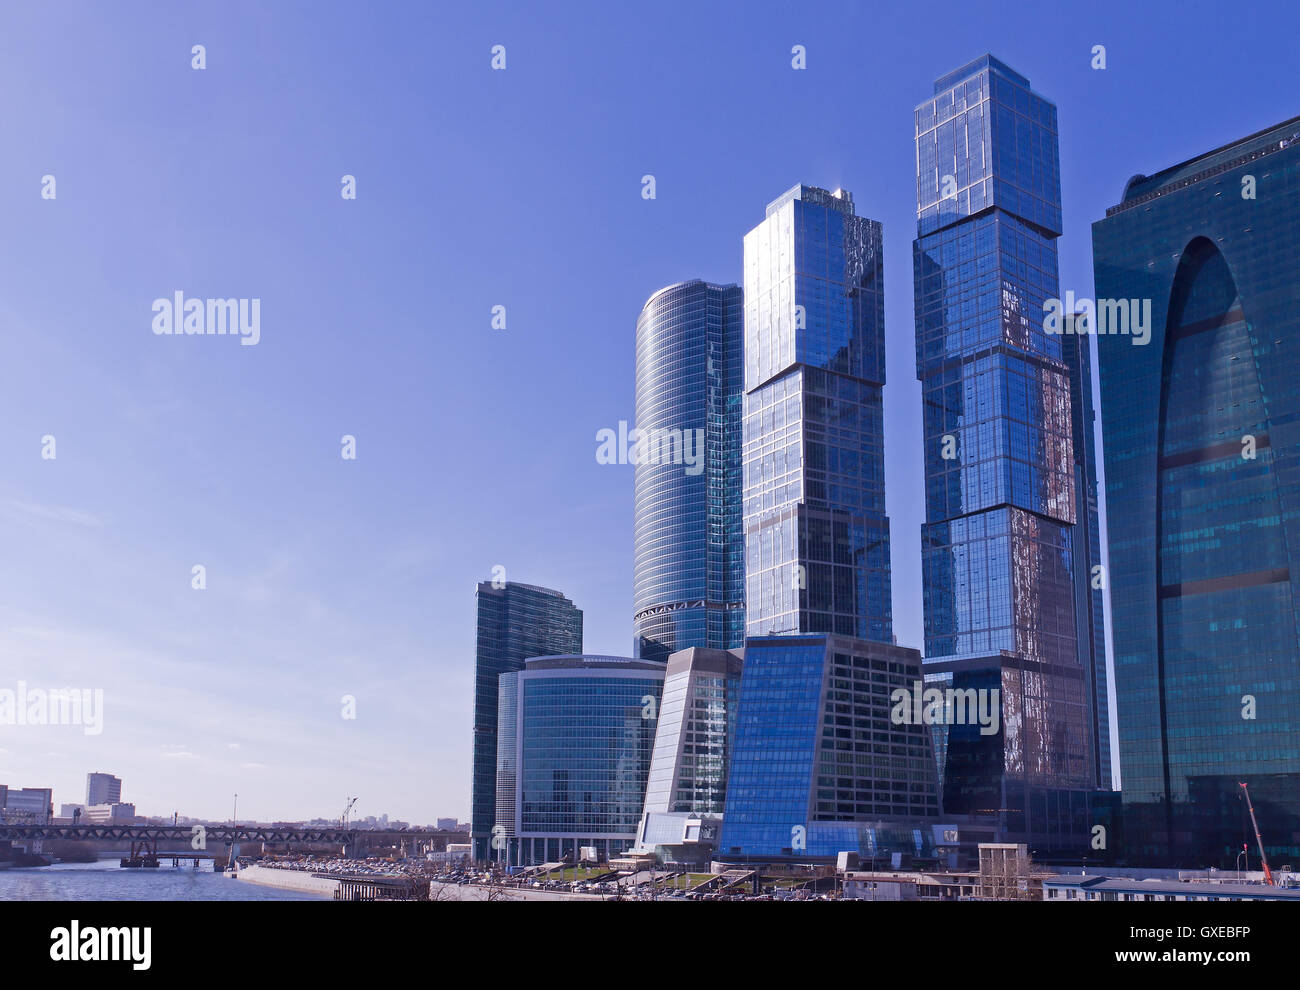 Contemporary Russian Architecture Concept Modern Futuristic Skyscrapers And City Office Buildings In Moscow Russia